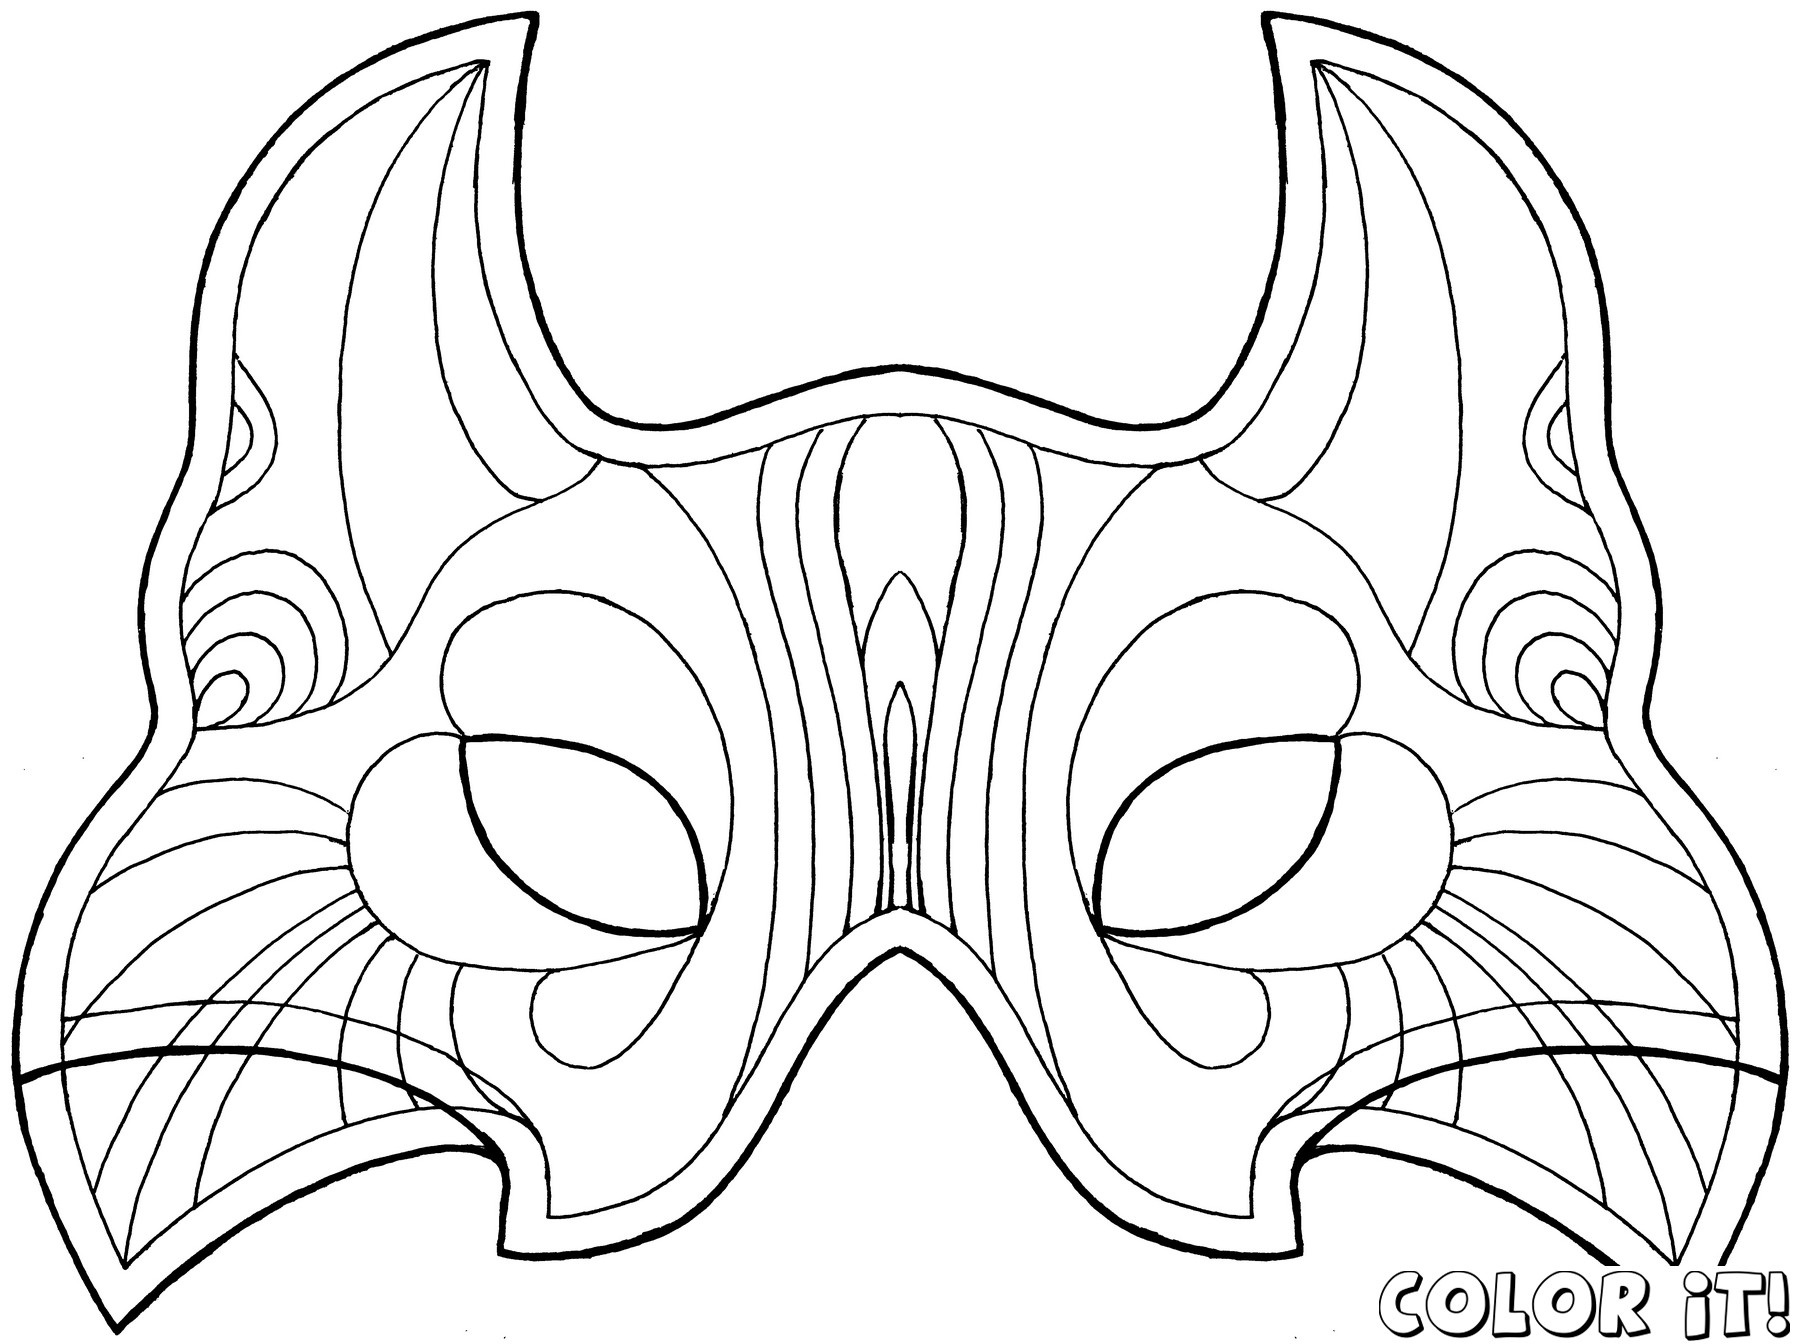 The best free Mask drawing images. Download from 3056 free